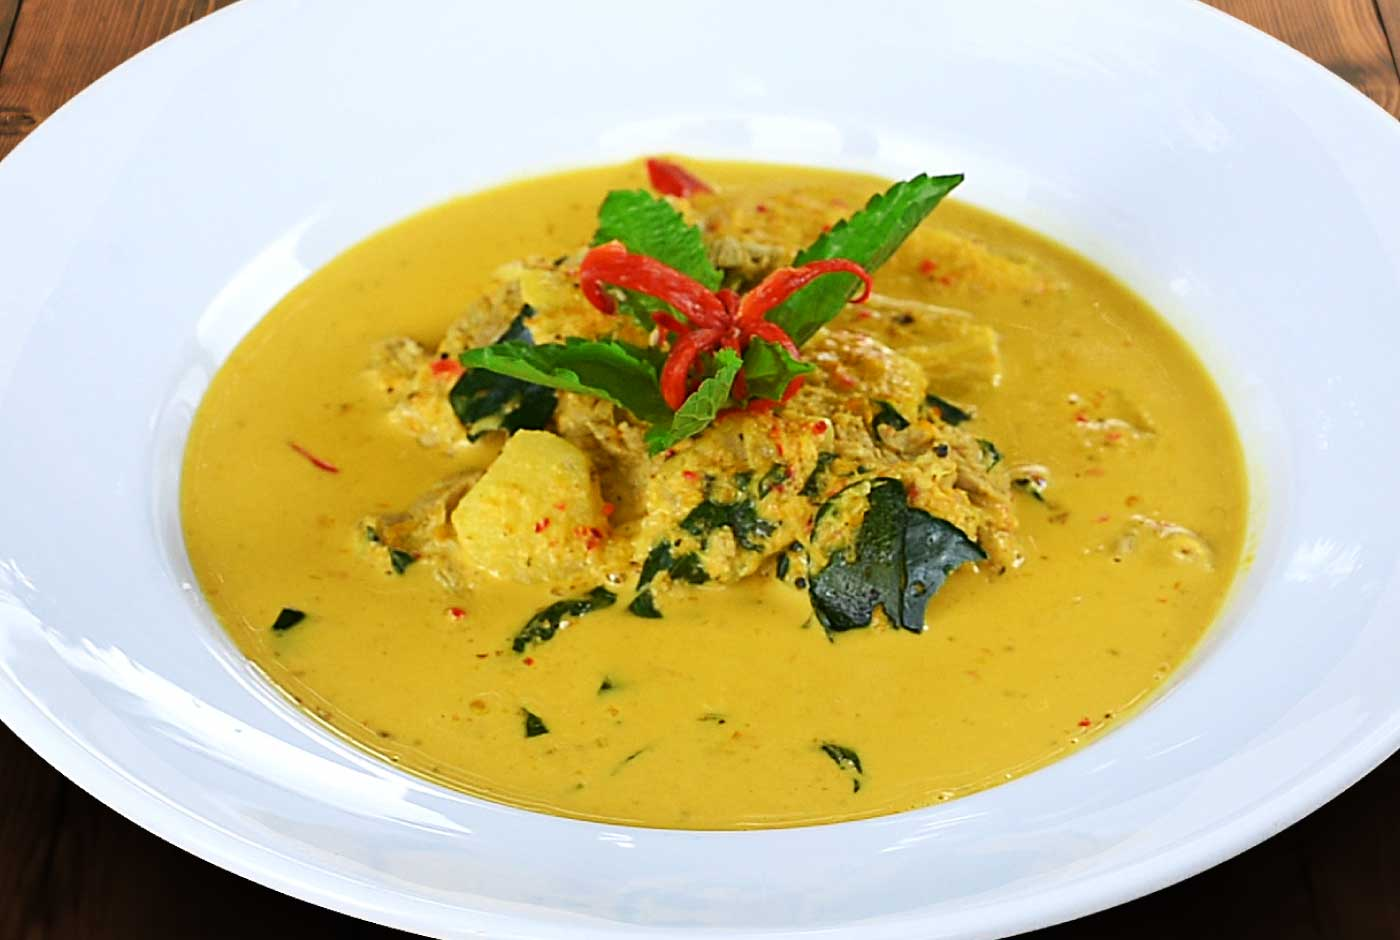 Red curry with pork and pineapple